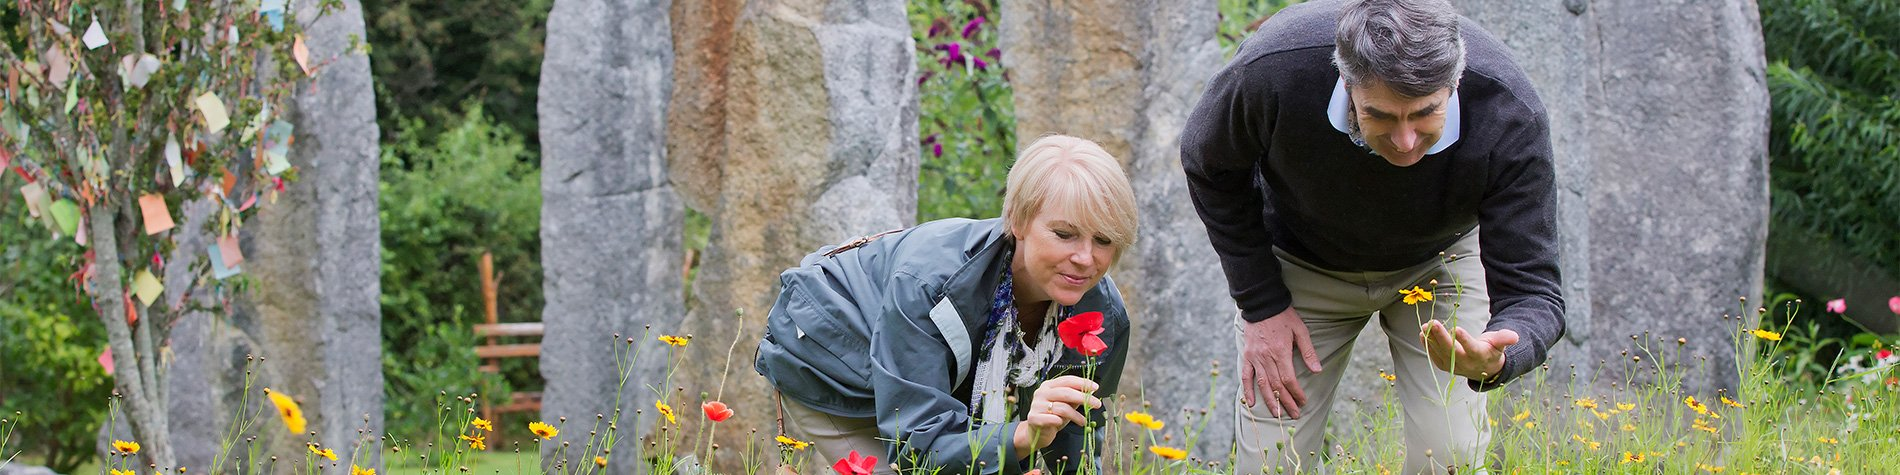 Man and woman smelling and observing flowers